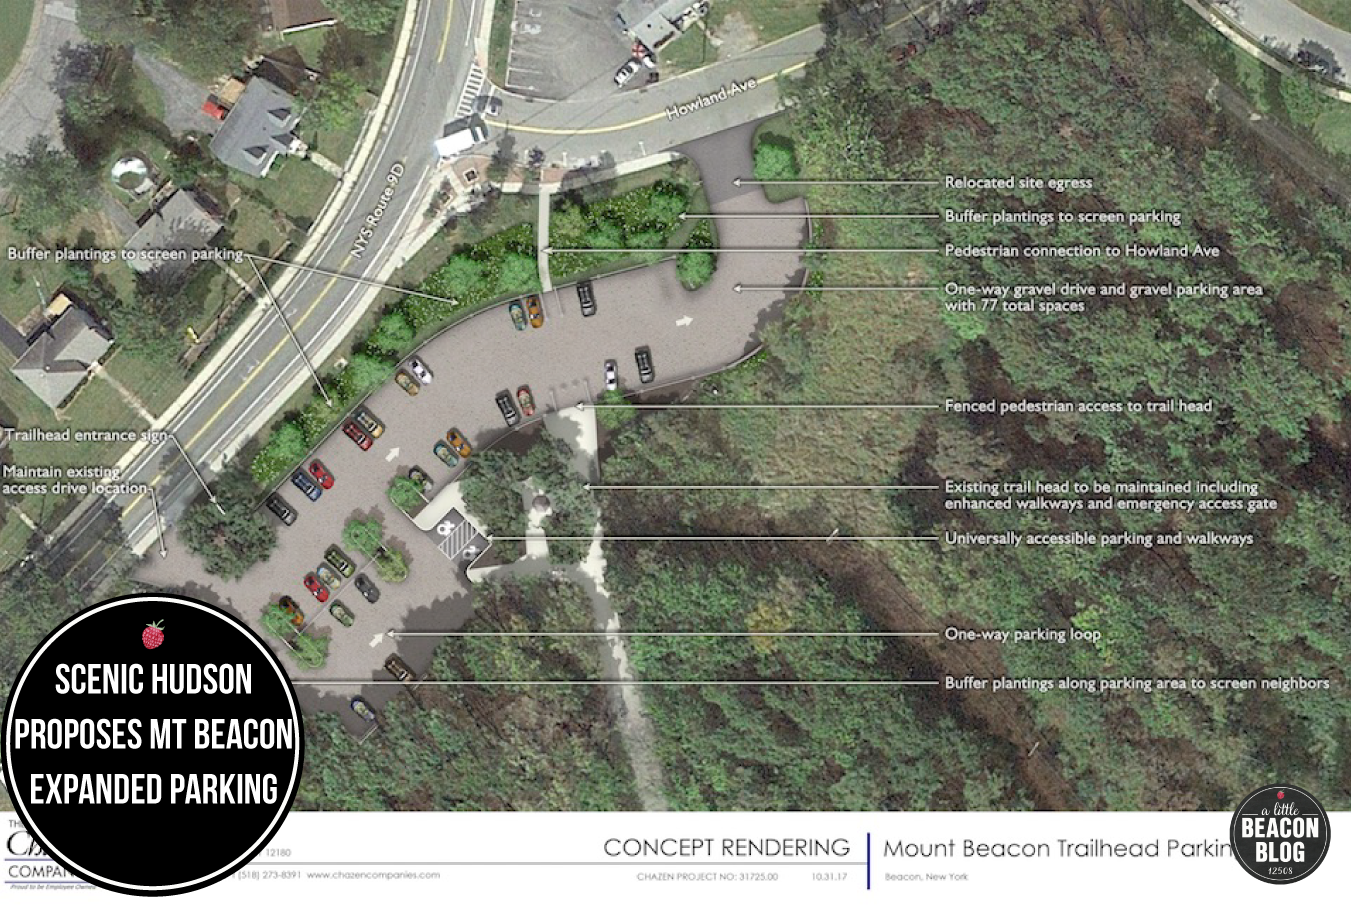 Photo Credit:  Concept rendering of Mount Beacon trailhead parking. Copyright © 2017 Scenic Hudson, Inc., All rights reserved.